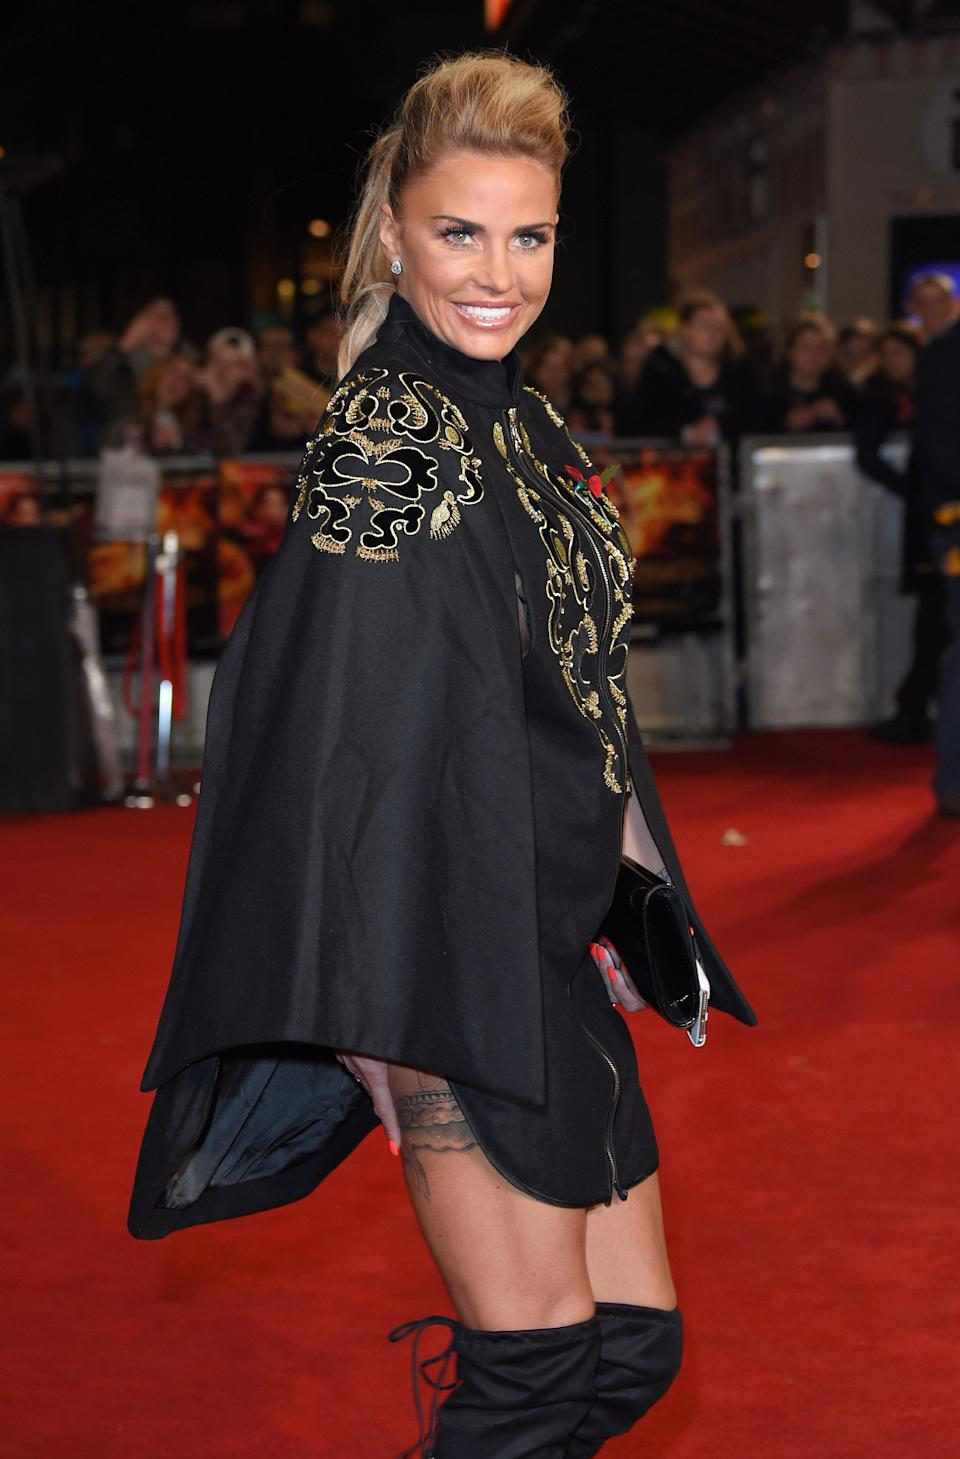 While she's been in the CBB house once and the I'm A Celebrity jungle <i>twice</i>, Katie's most successful reality appearances have been the innumerable fly-on-the-wall series she's starred in, both alone and with ex-husband Peter Andre.